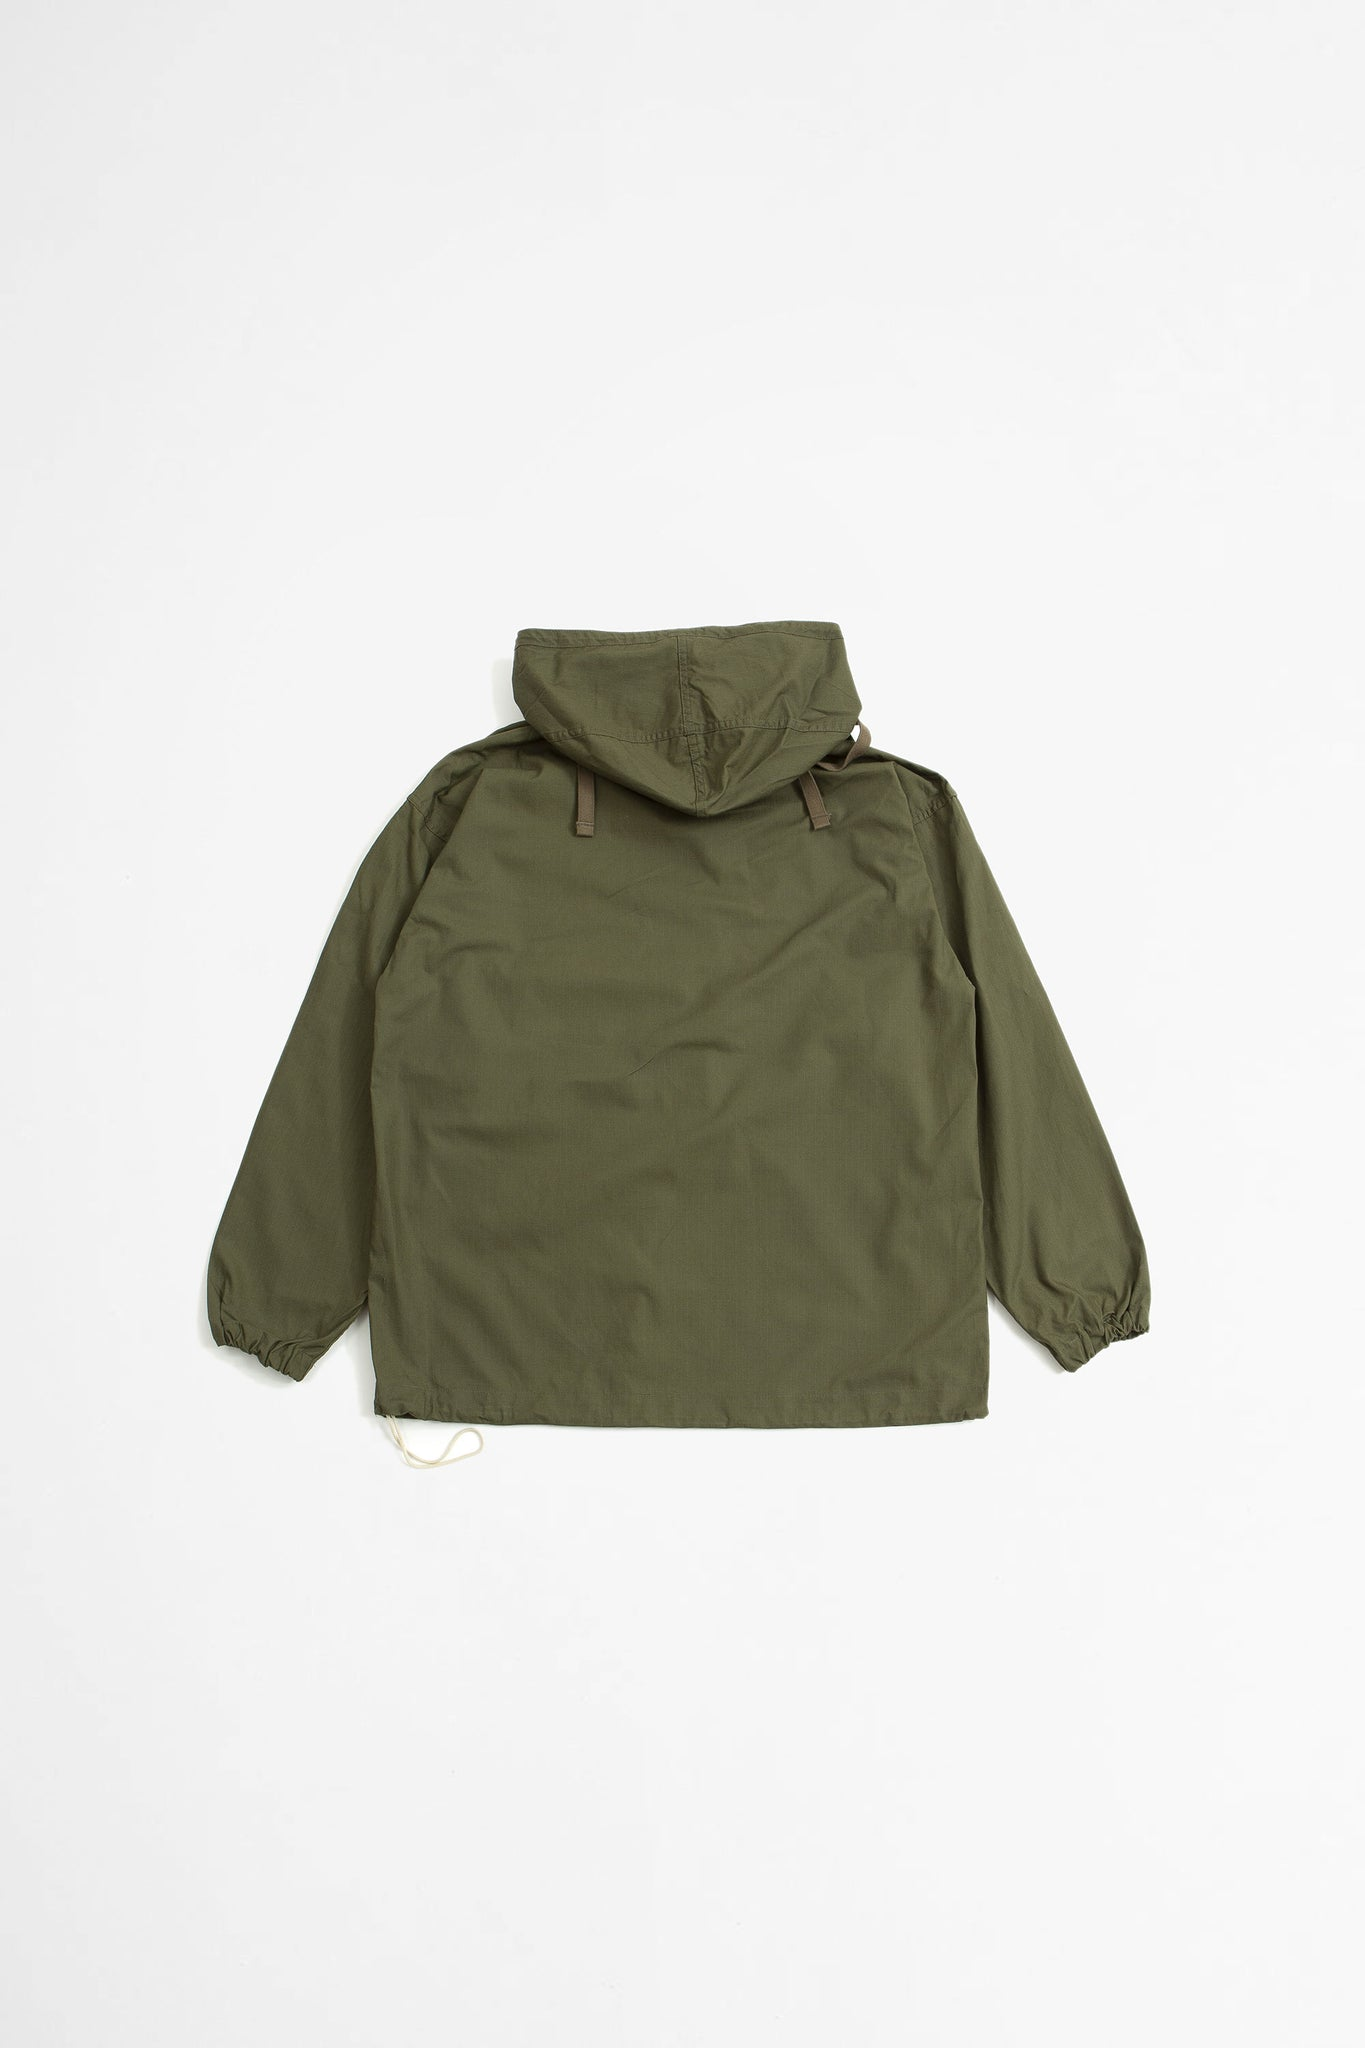 Salvadge parka olive